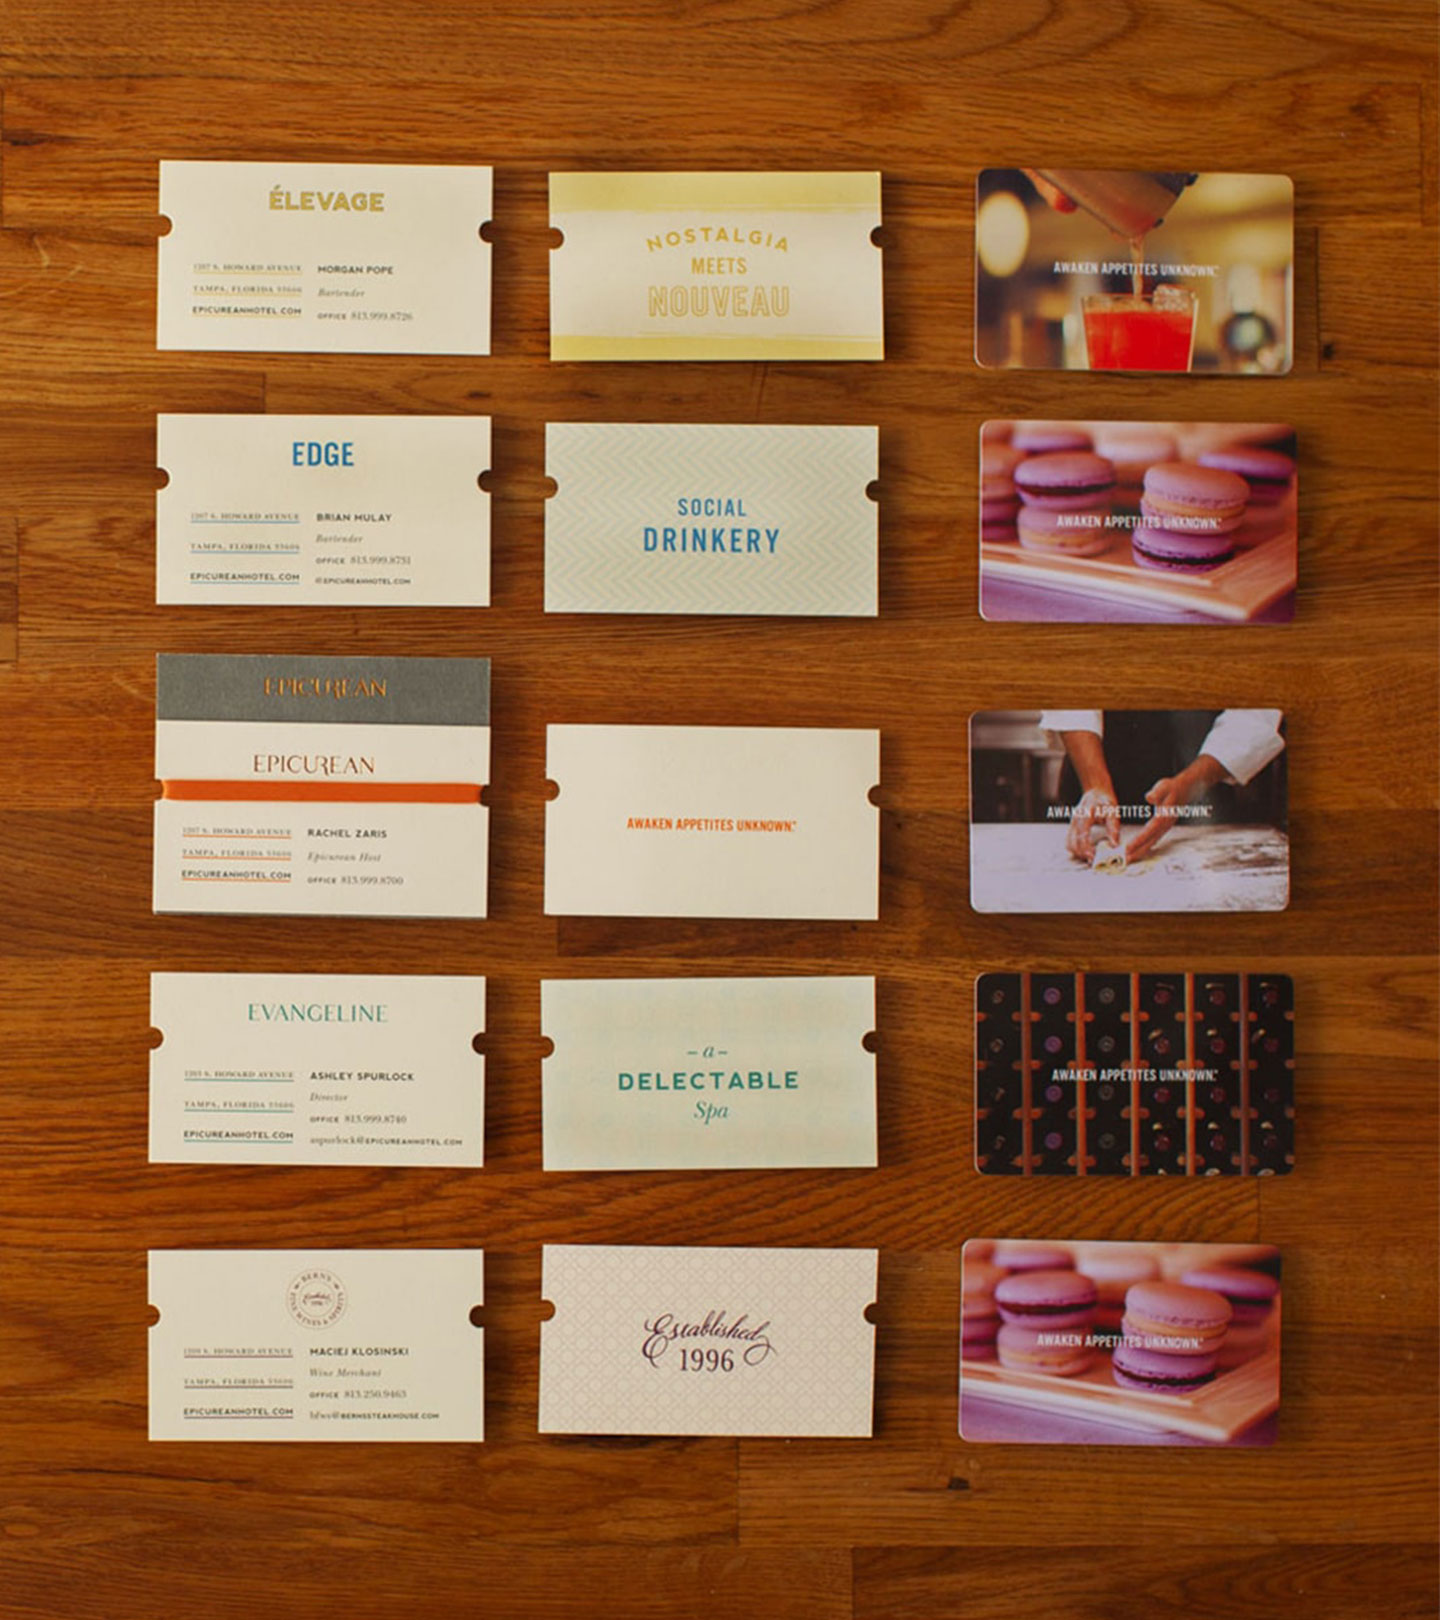 Epicurean Hotel branded collateral and business cards